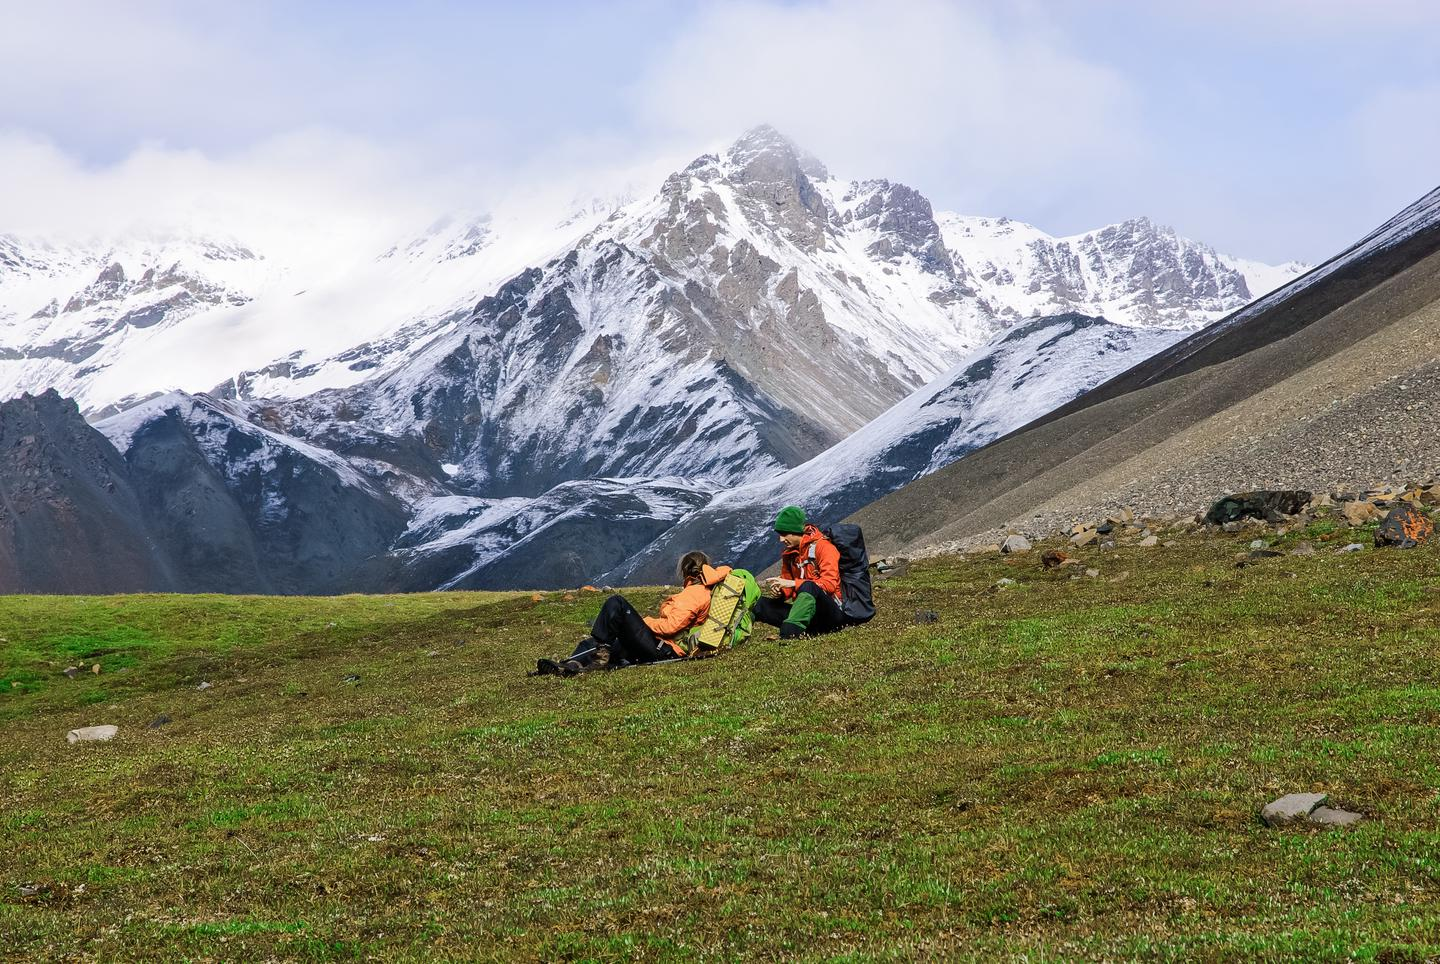 Backpackers in Mentasta MountainsWrangell-St. Elias National Park is a backpacker's paradise.  A variety of routes take you into beautiful country, including the Mentasta Mountains.